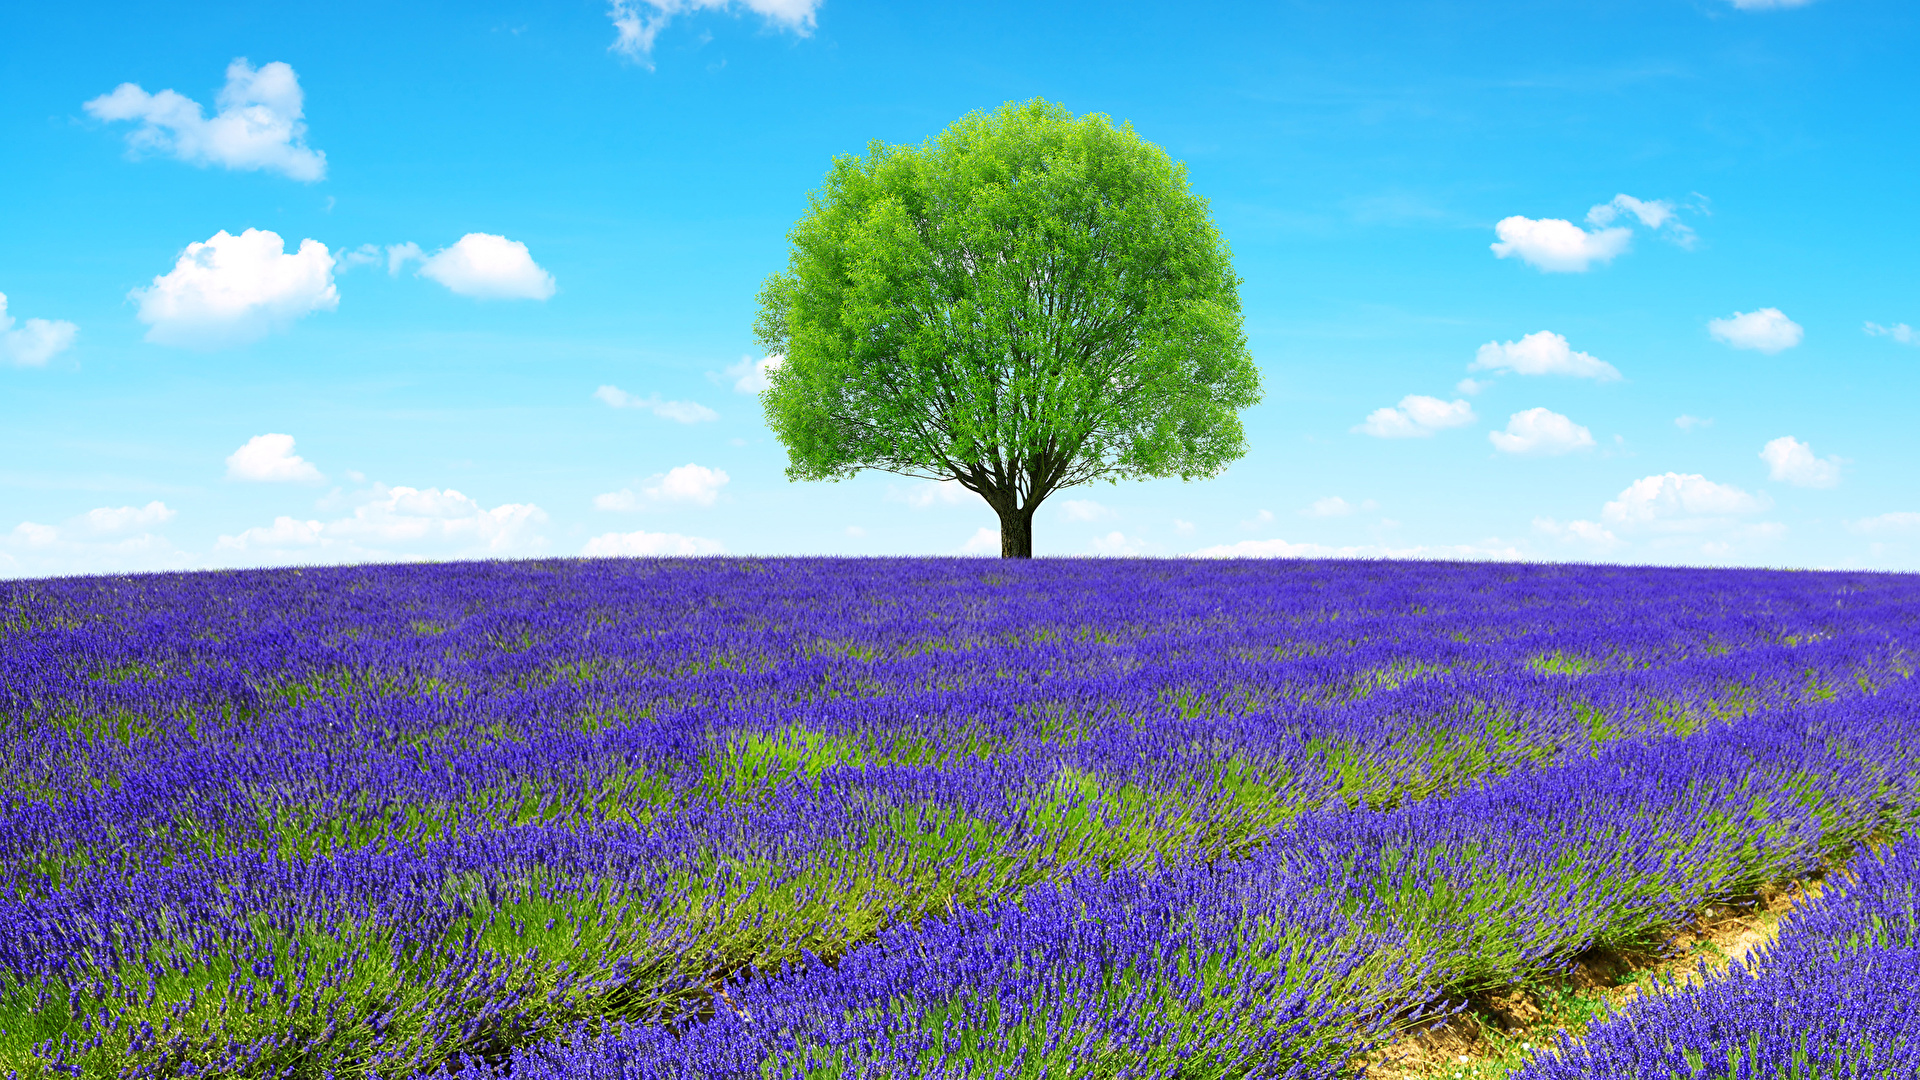 Pictures Provence France Nature Fields Lavandula Trees 1920x1080 1920x1080